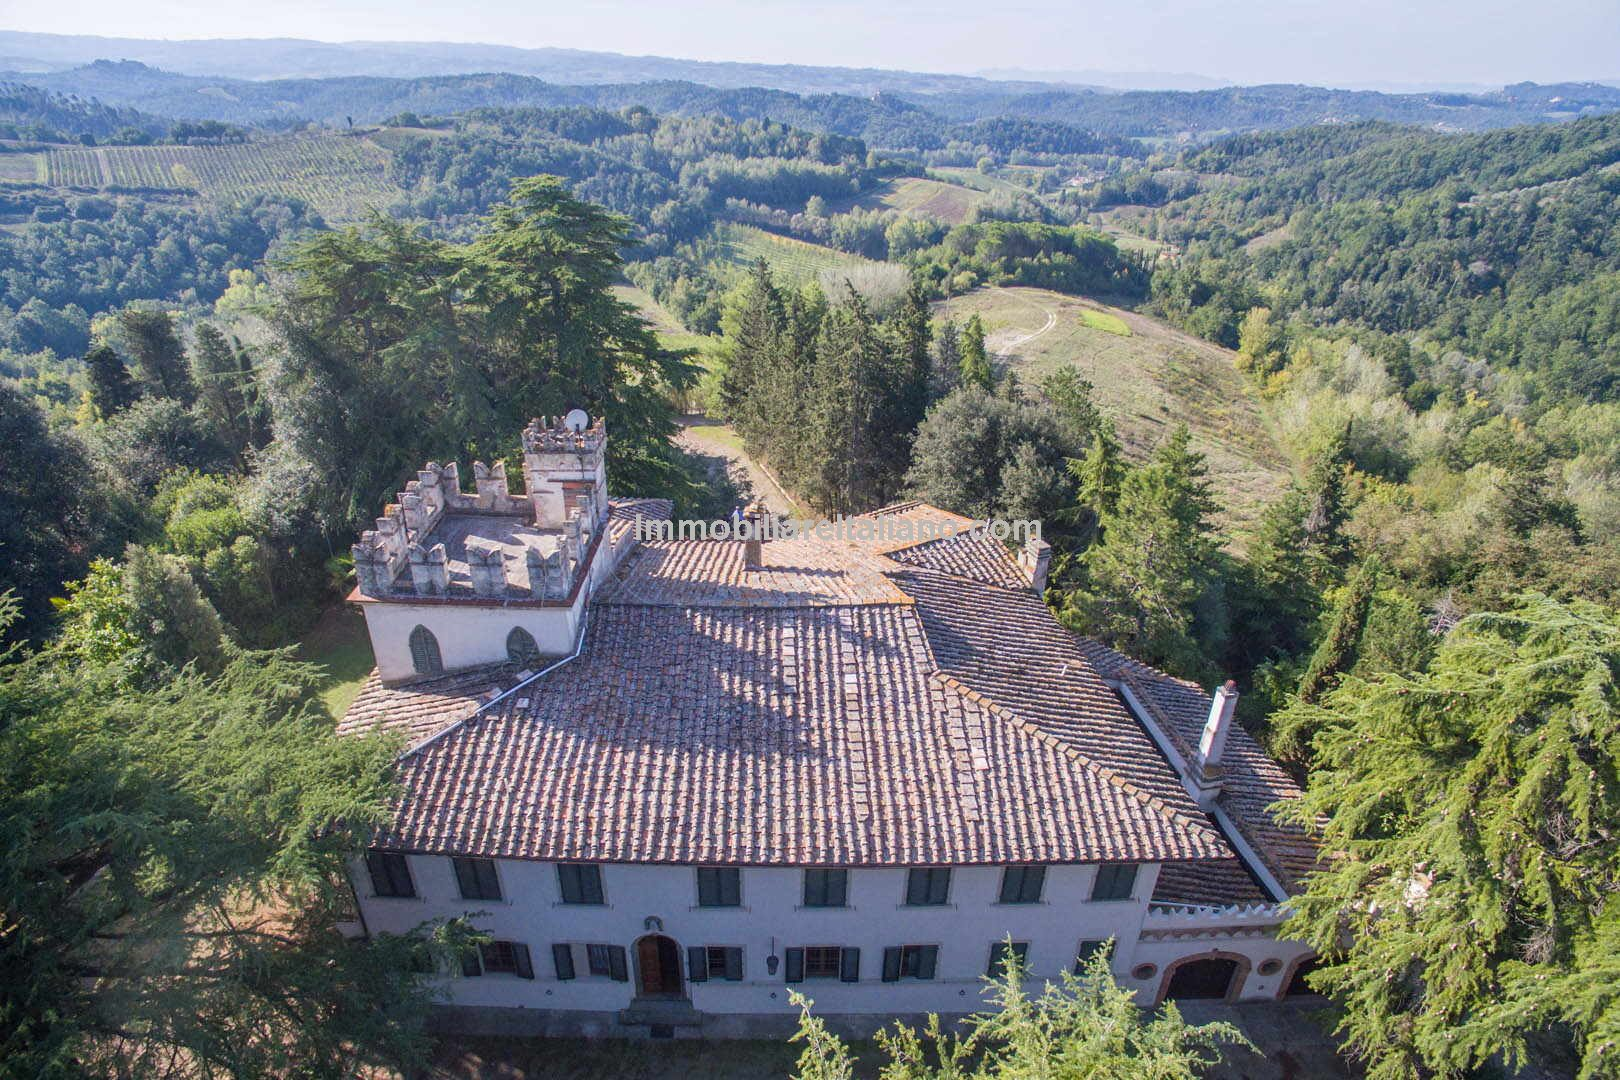 Chianti Historical Vineyard Estate